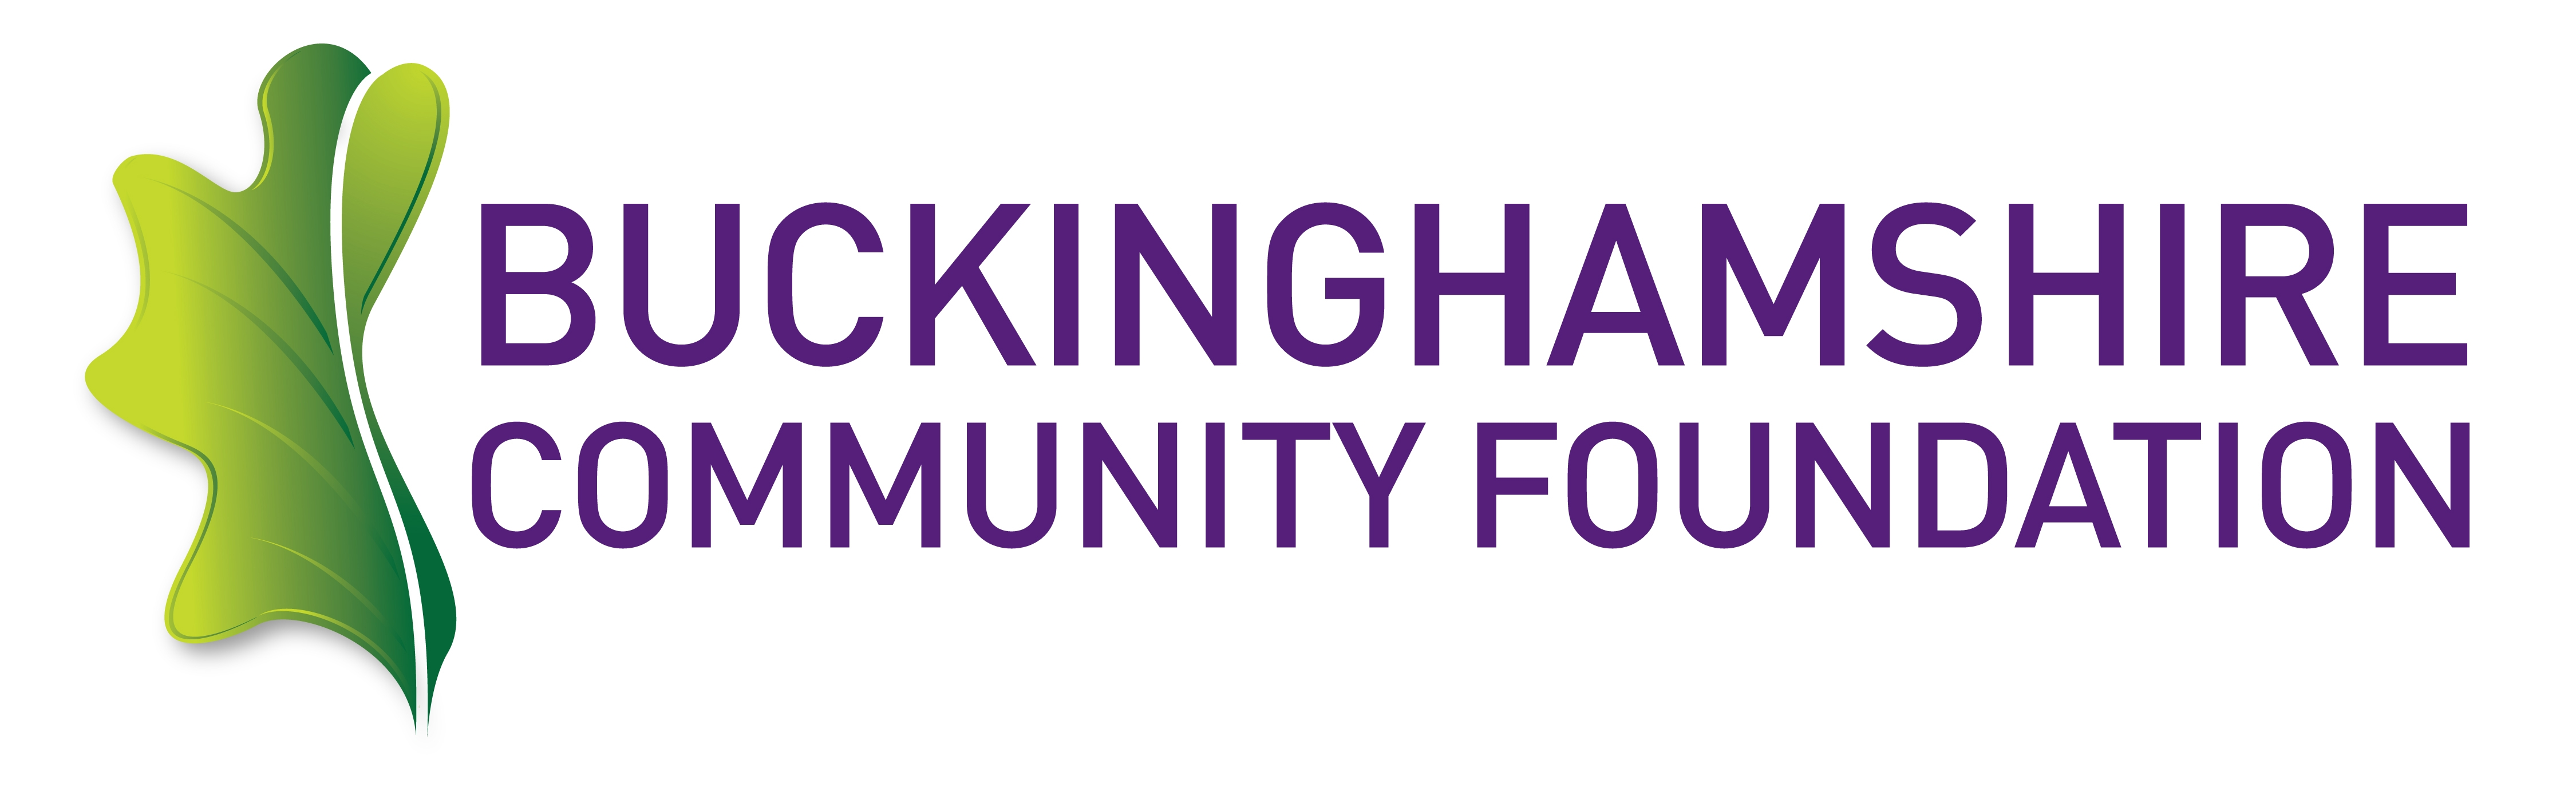 Buckinghamshire Foundation logo